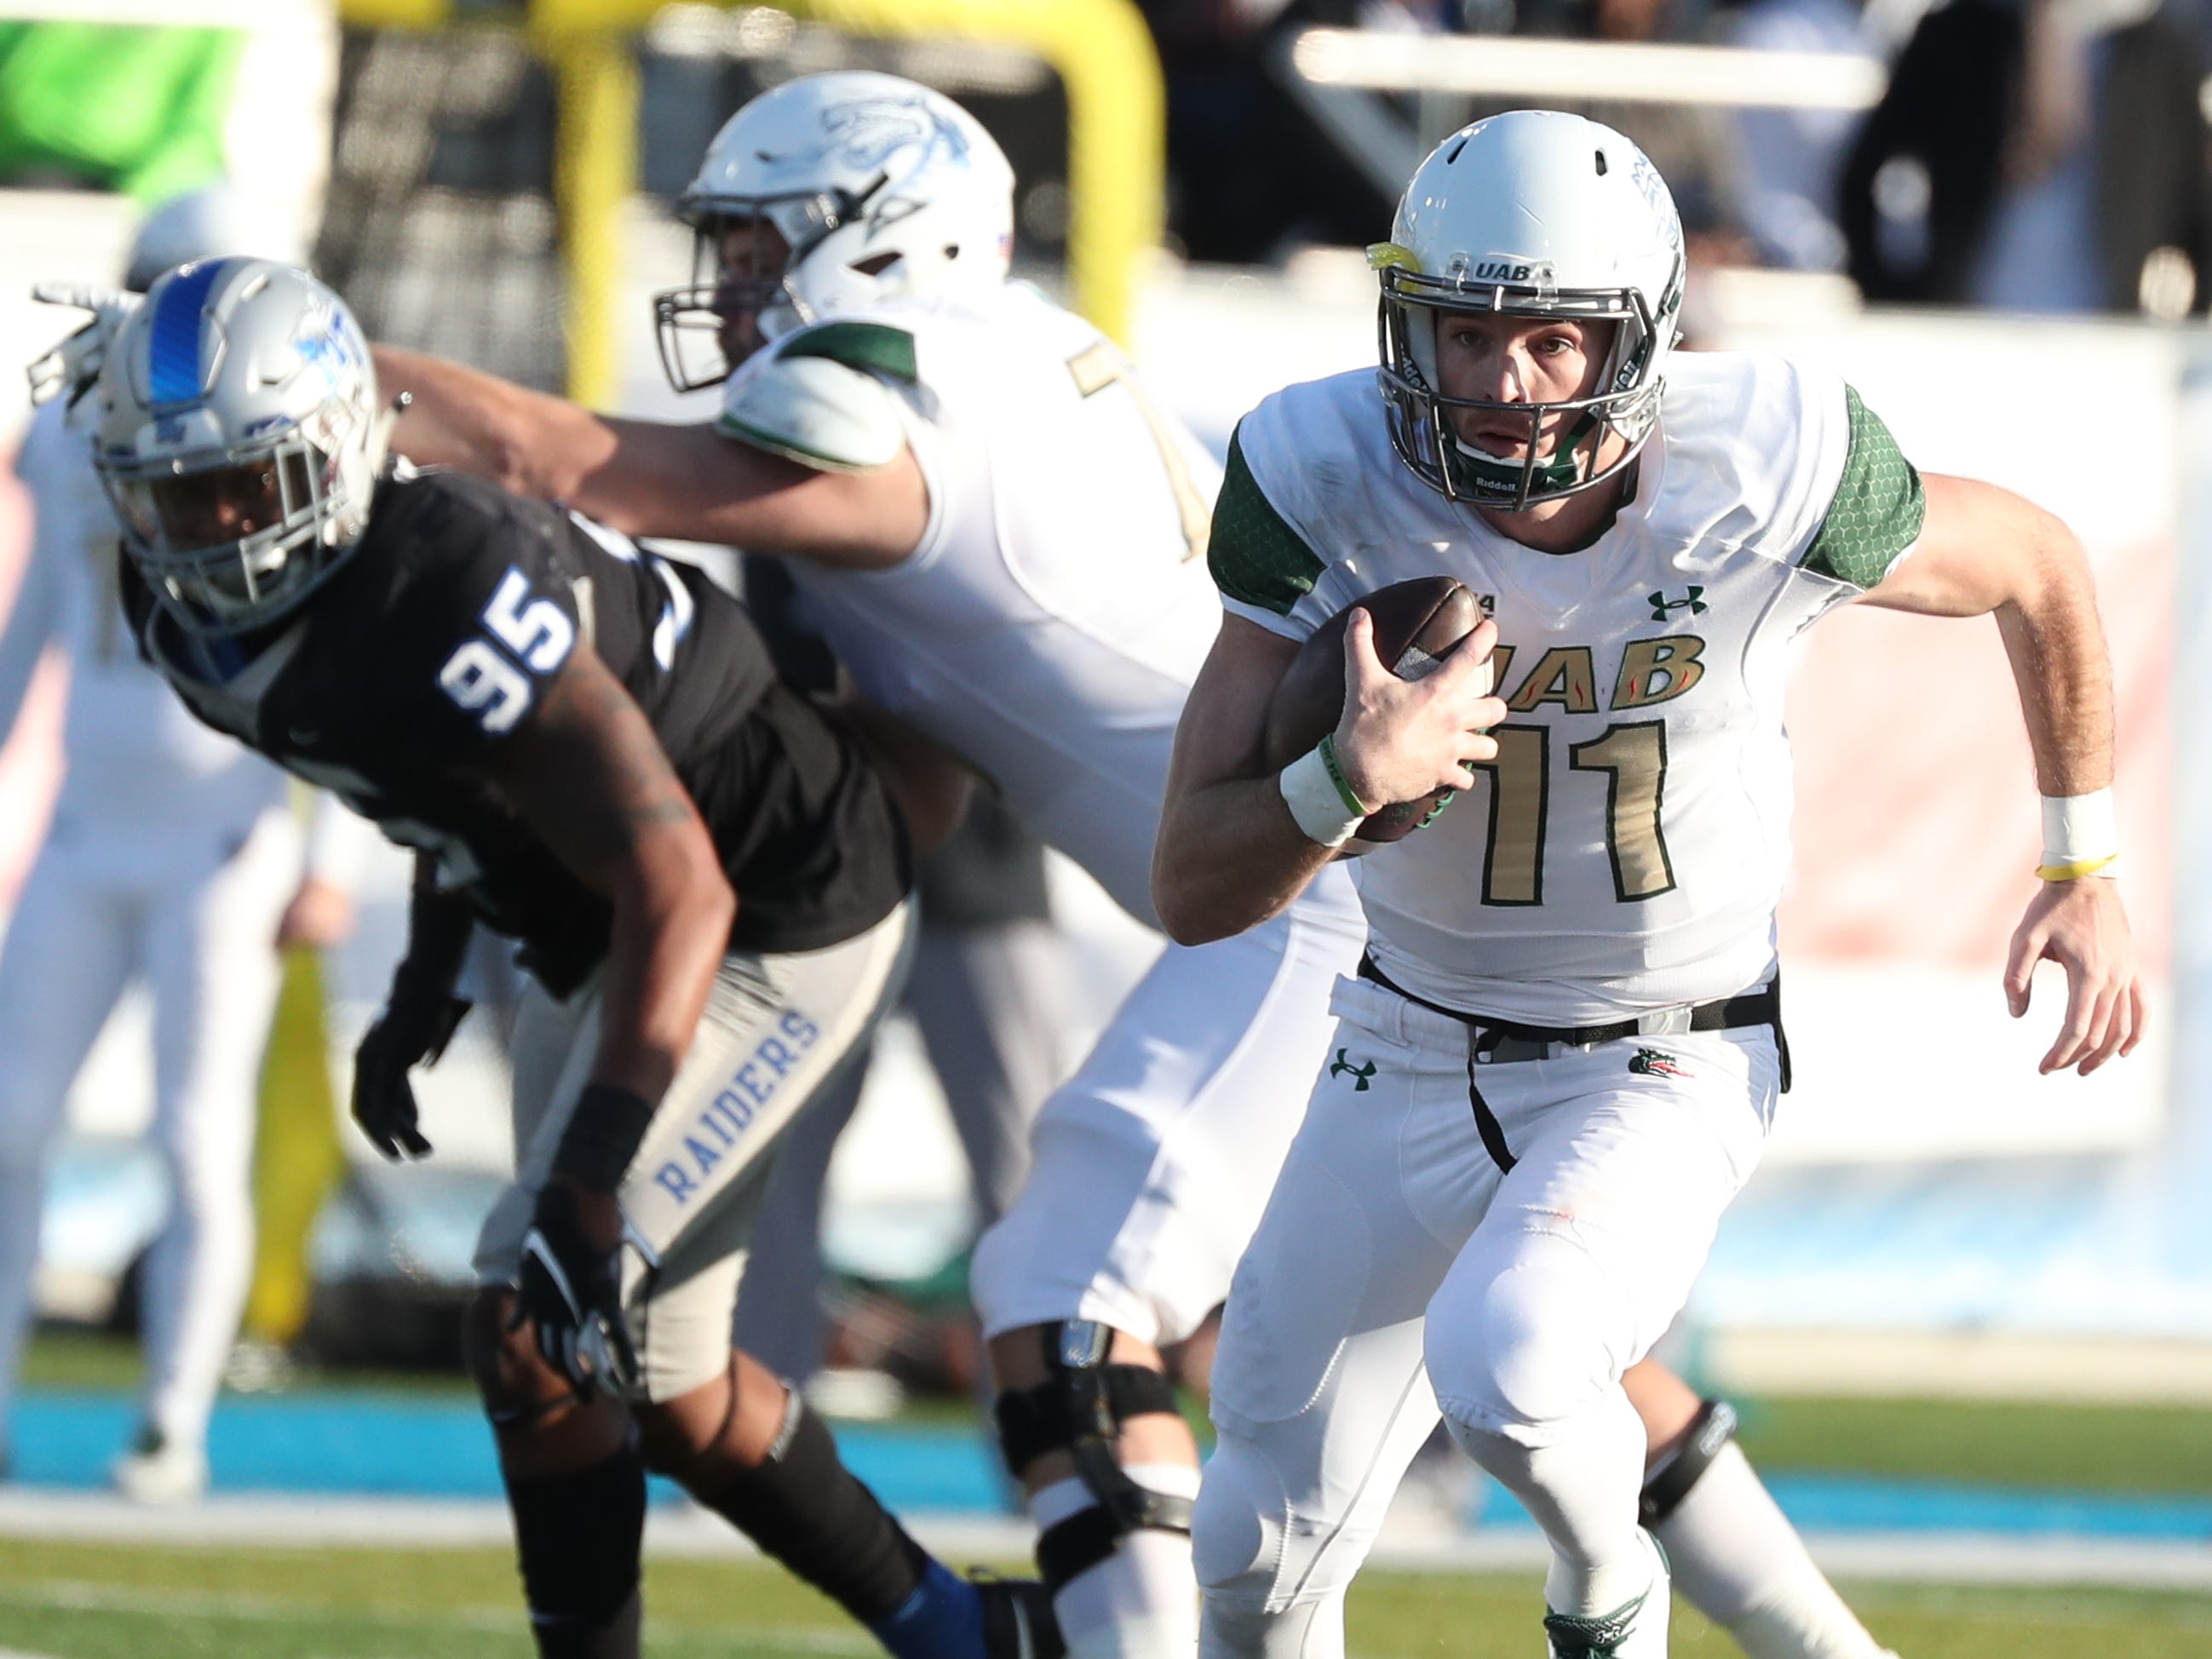 UAB's quarterback AJ Erdely (11) runs the option against MTSU during the game at MTSU on Saturday, Nov. 24, 2018.